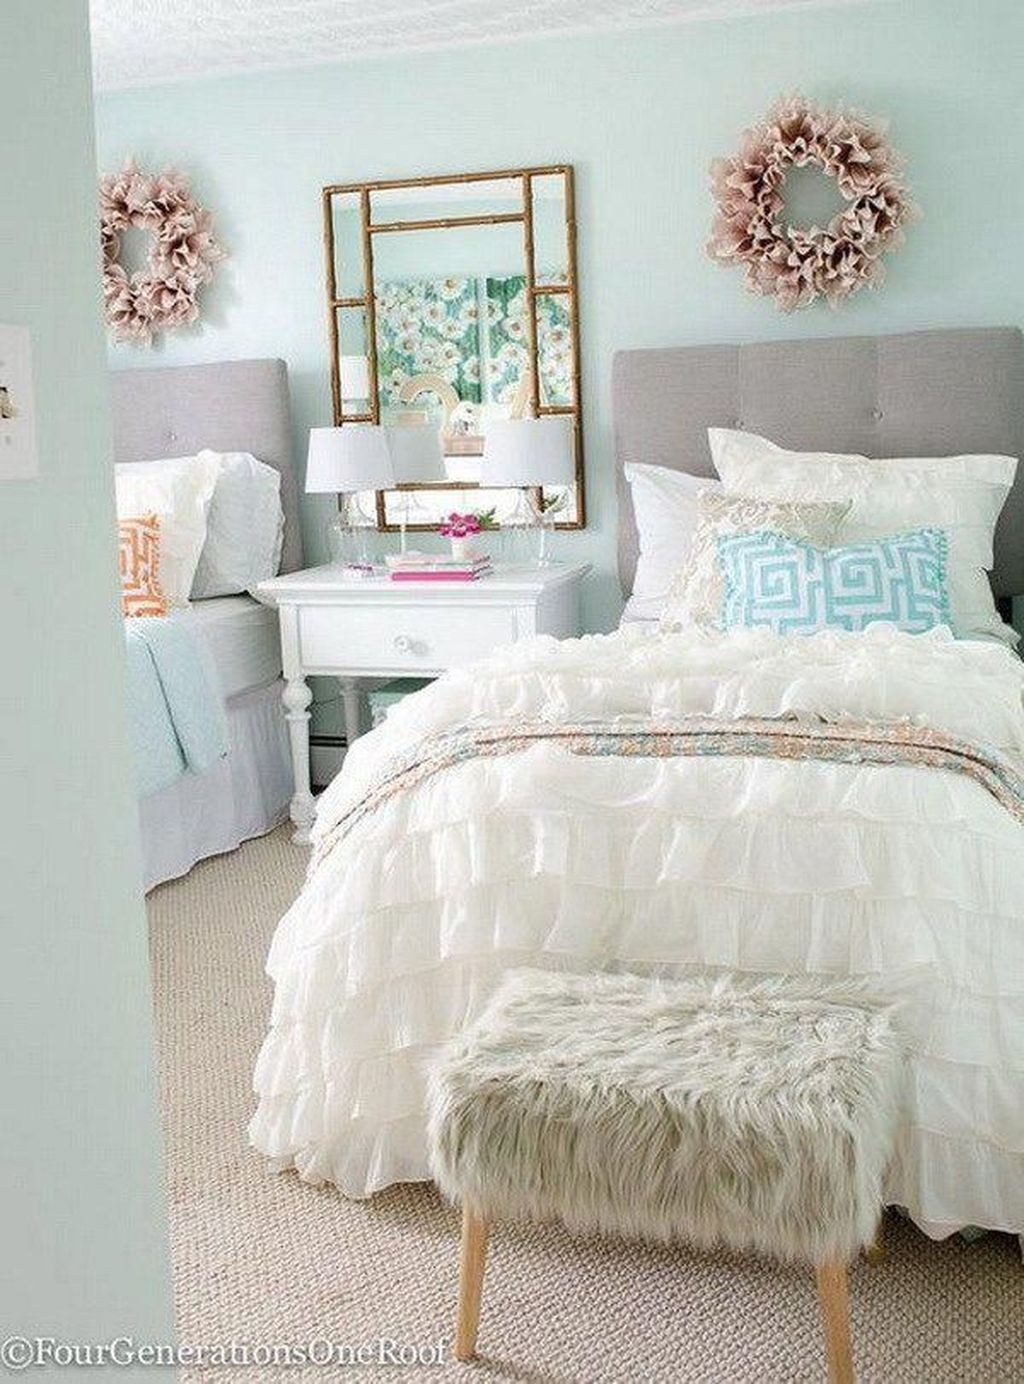 Best Teenager Bedroom Ideas With Awesome Decor 15